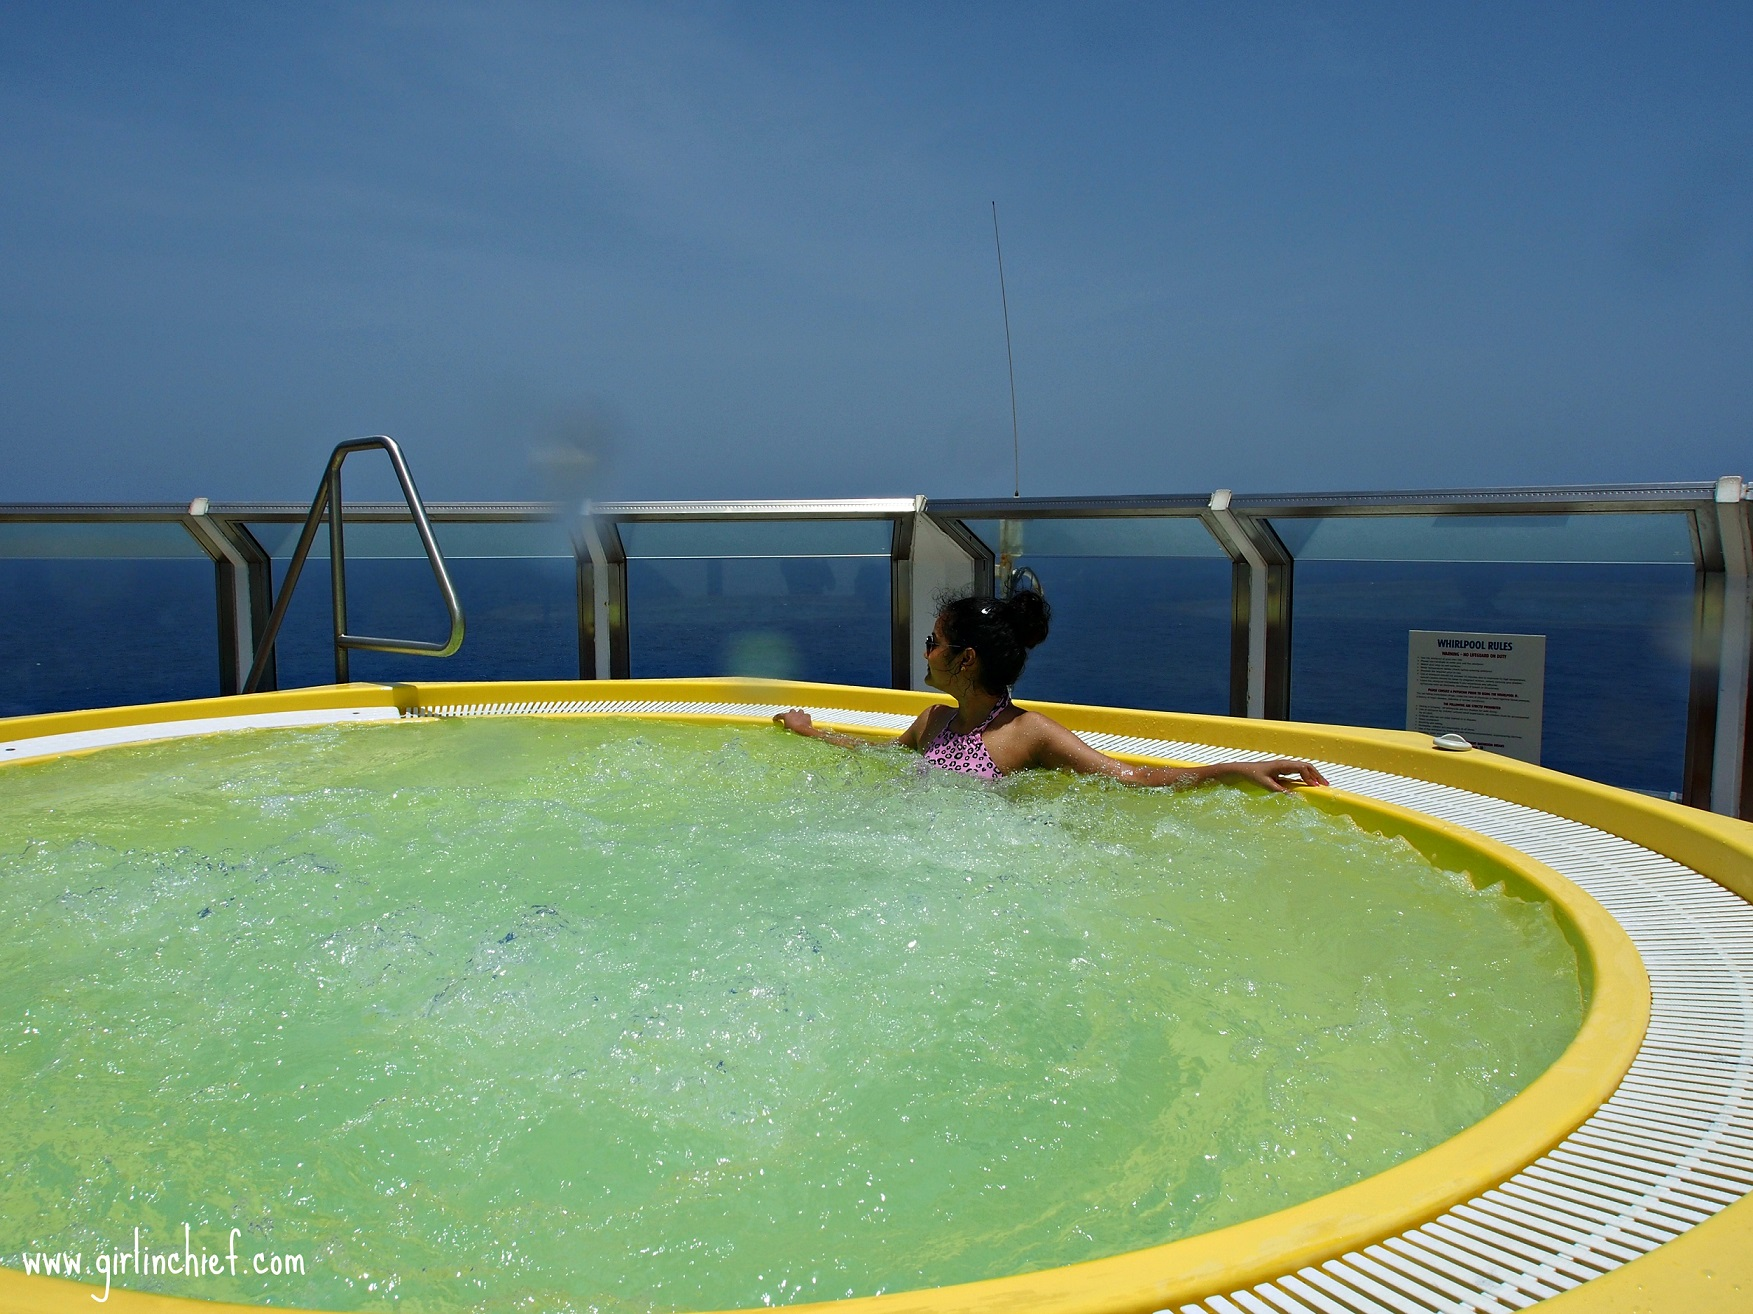 carnival-freedom-jacuzzi